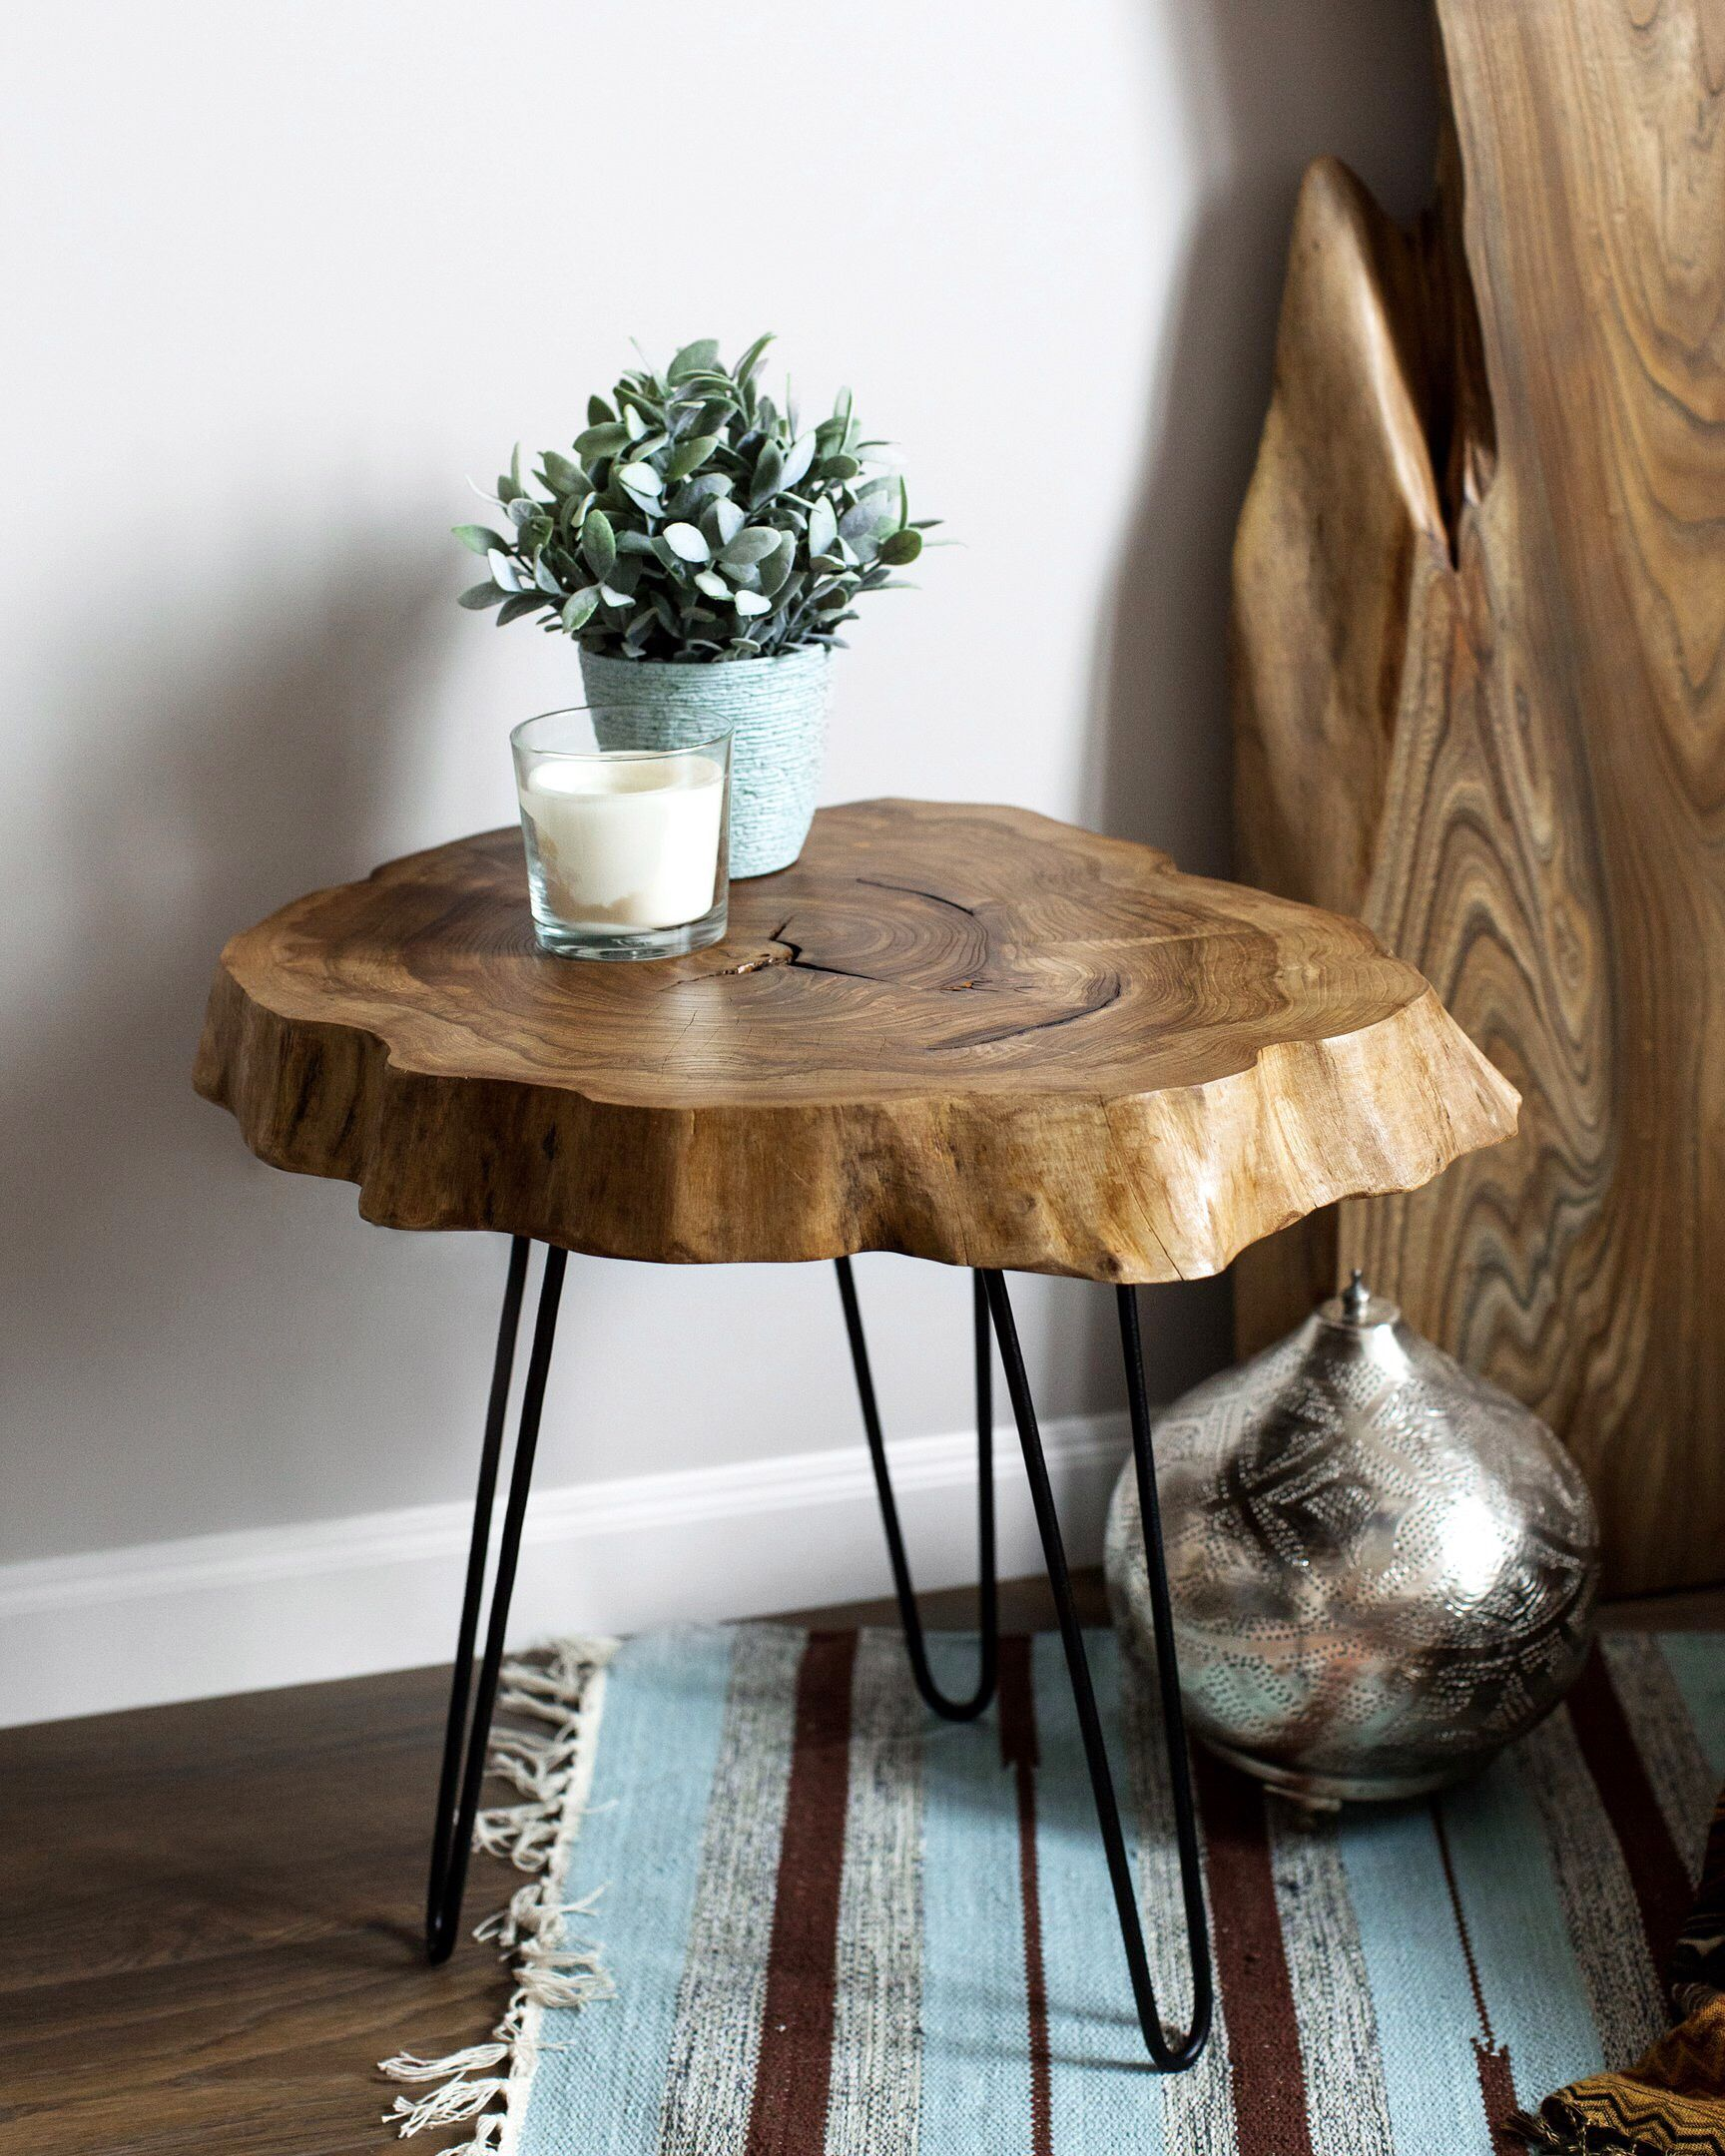 Pin By Ana Maria Herrera Tascon On My Woodwork By Woodencat Wooden Coffee Table Designs Wood Table Design Coffee Table Design [ 2160 x 1728 Pixel ]